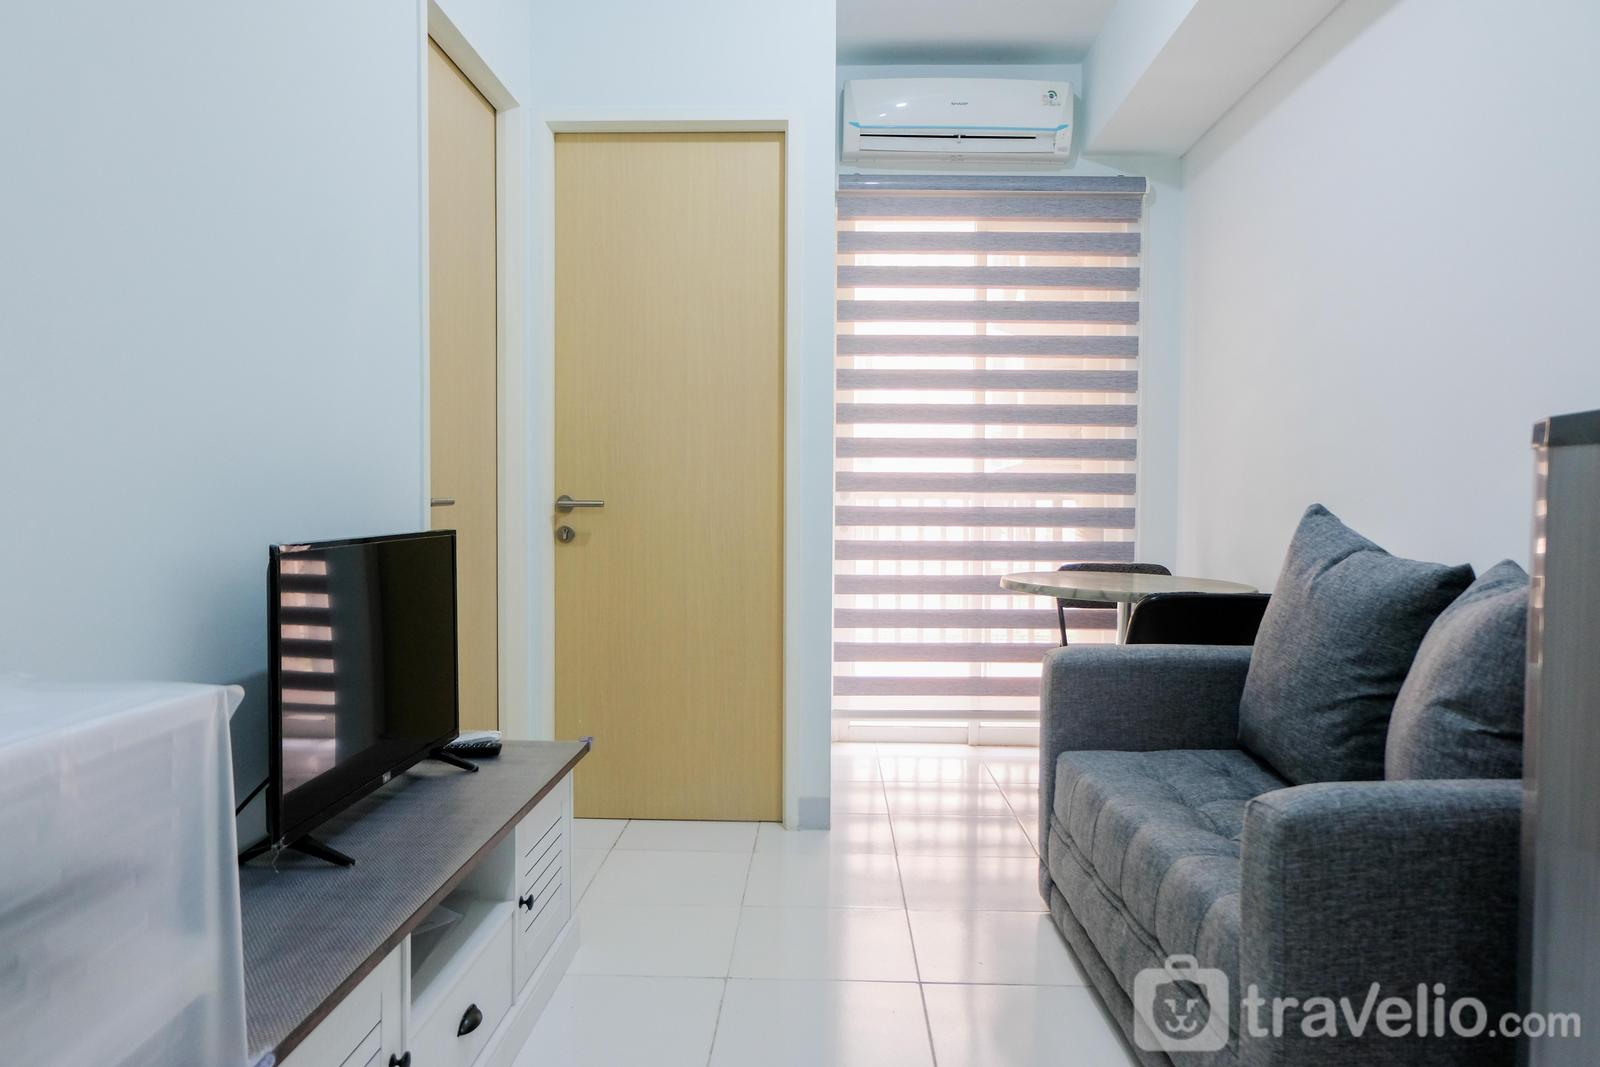 Ayodhya Residence Tangerang - Homey 2BR Ayodhya Apartment By Travelio